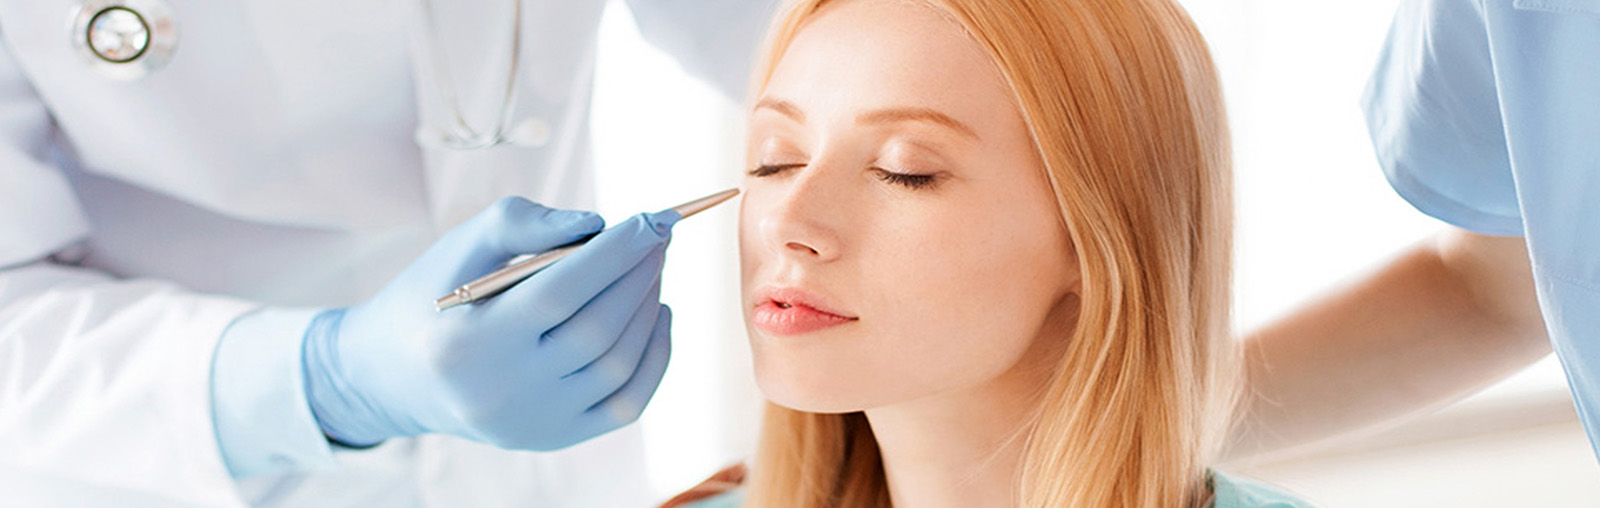 Dermatology in mumbai